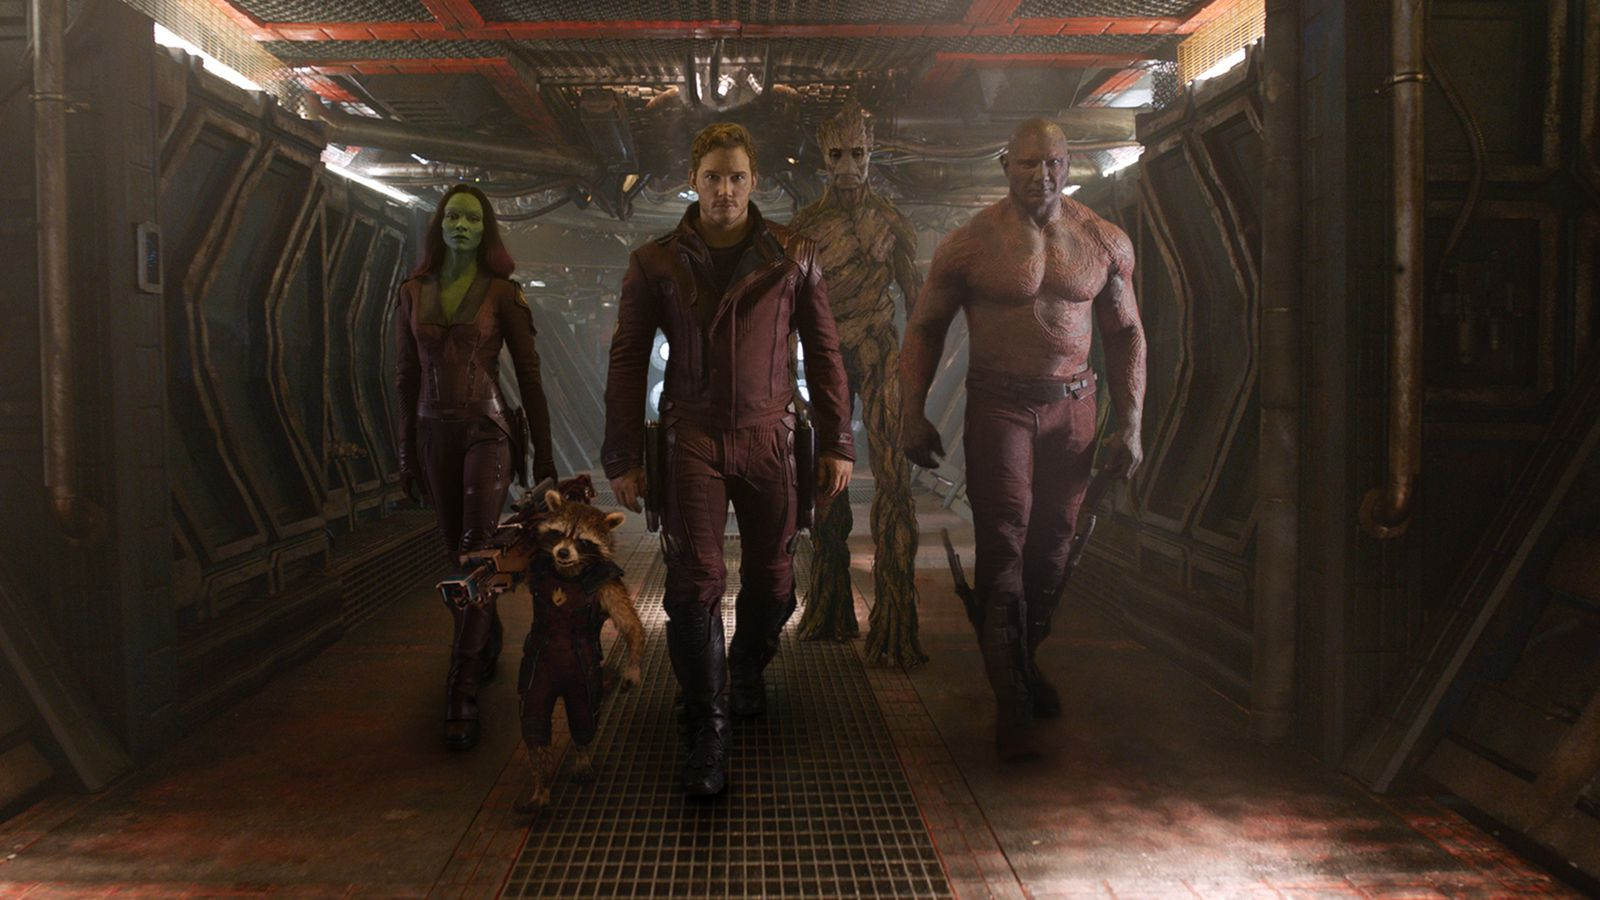 Fans waited up to seven hours for Disney's Guardians of the Galaxy ride